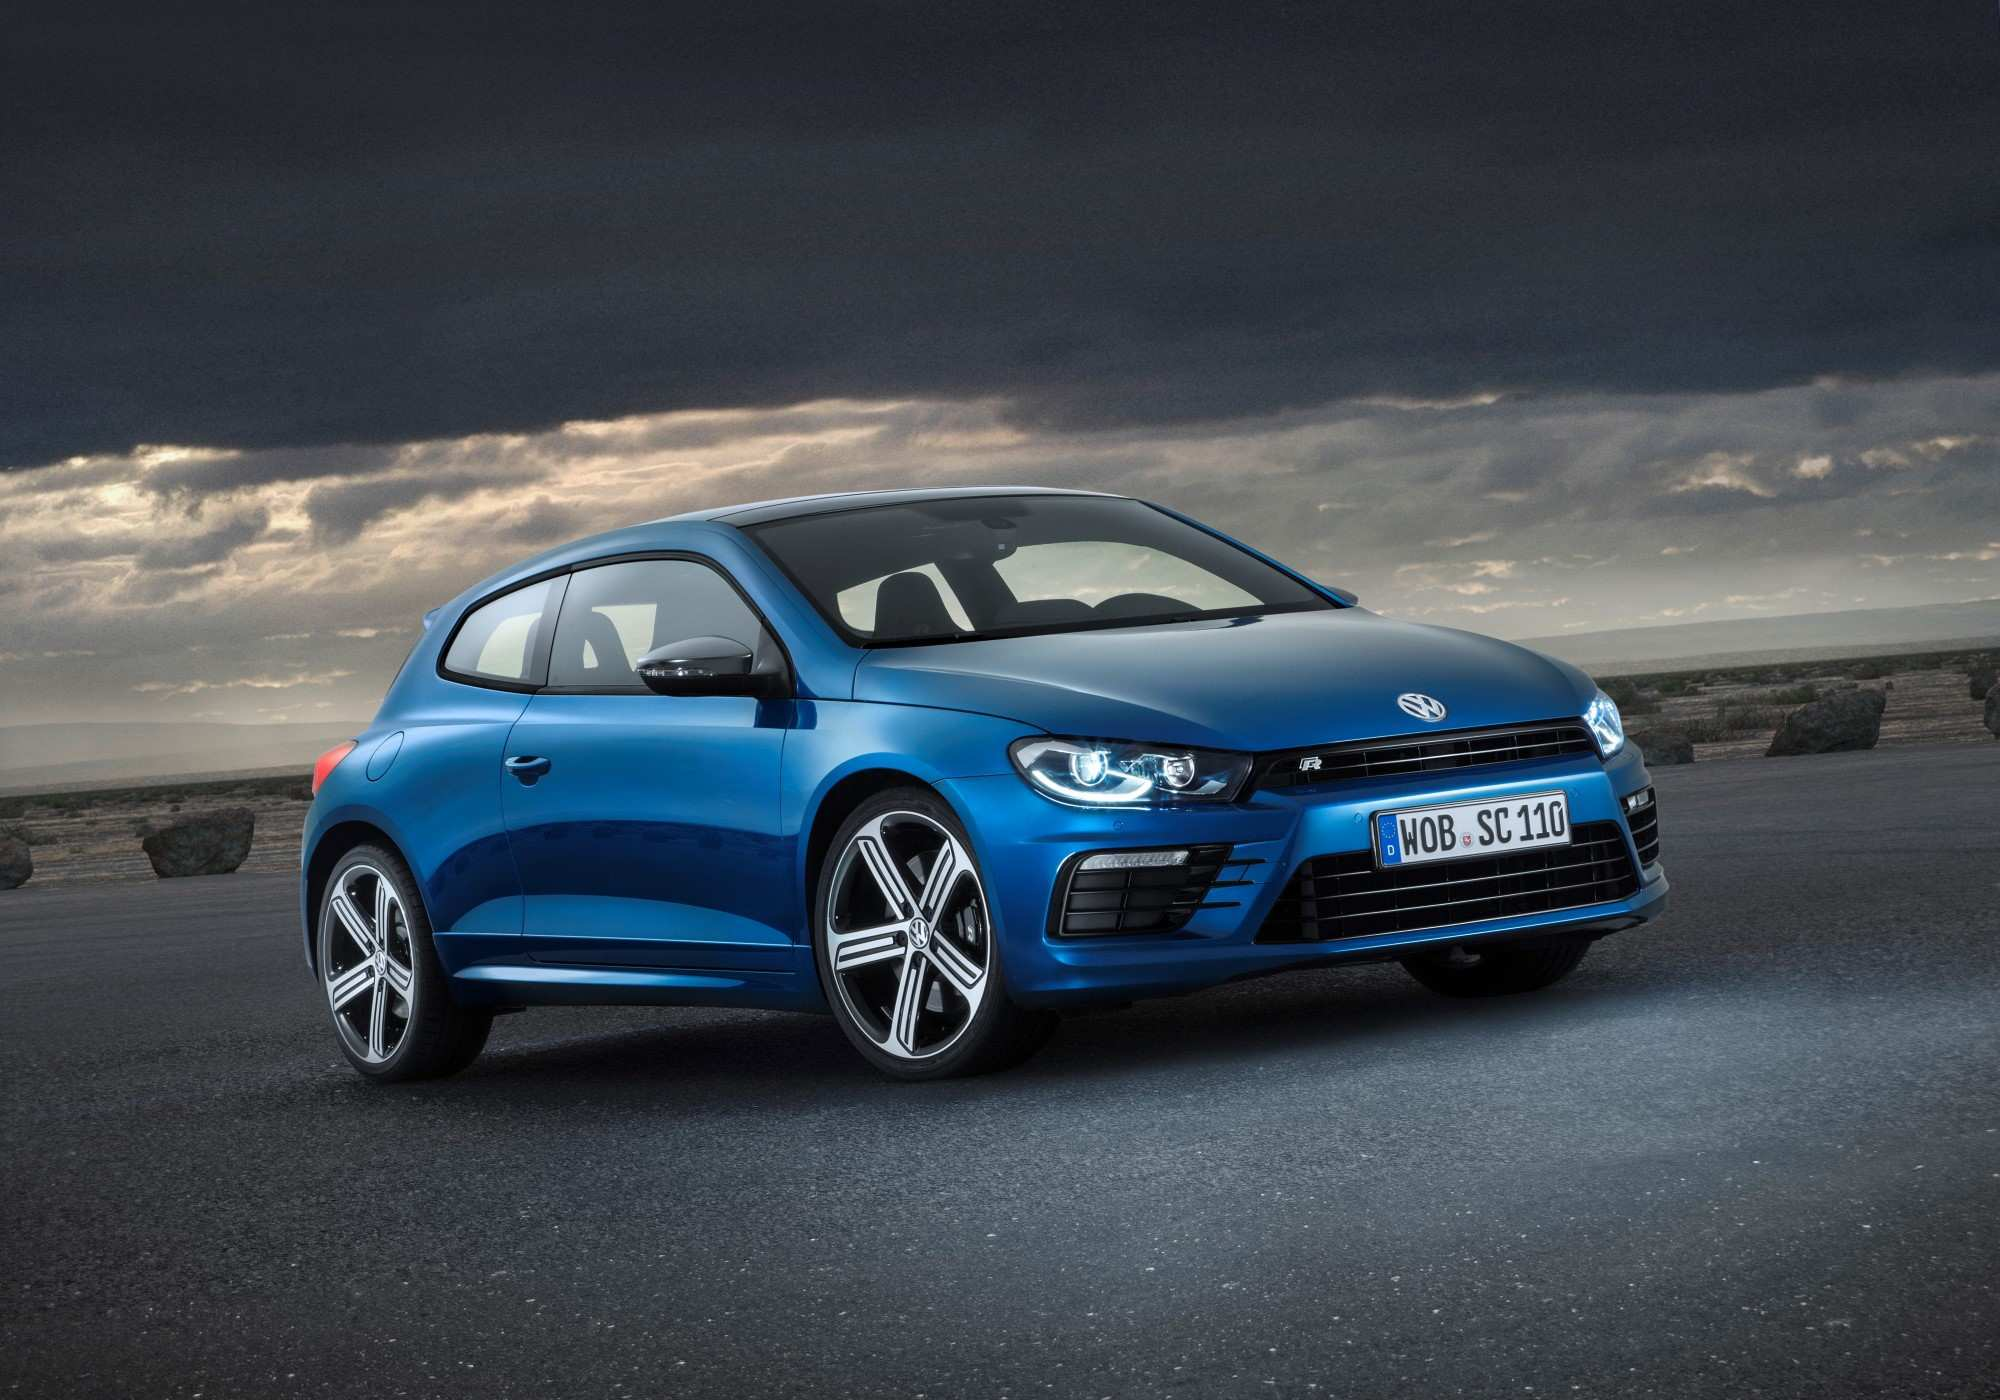 61 Best Review Vw Scirocco 2019 Price and Review for Vw Scirocco 2019